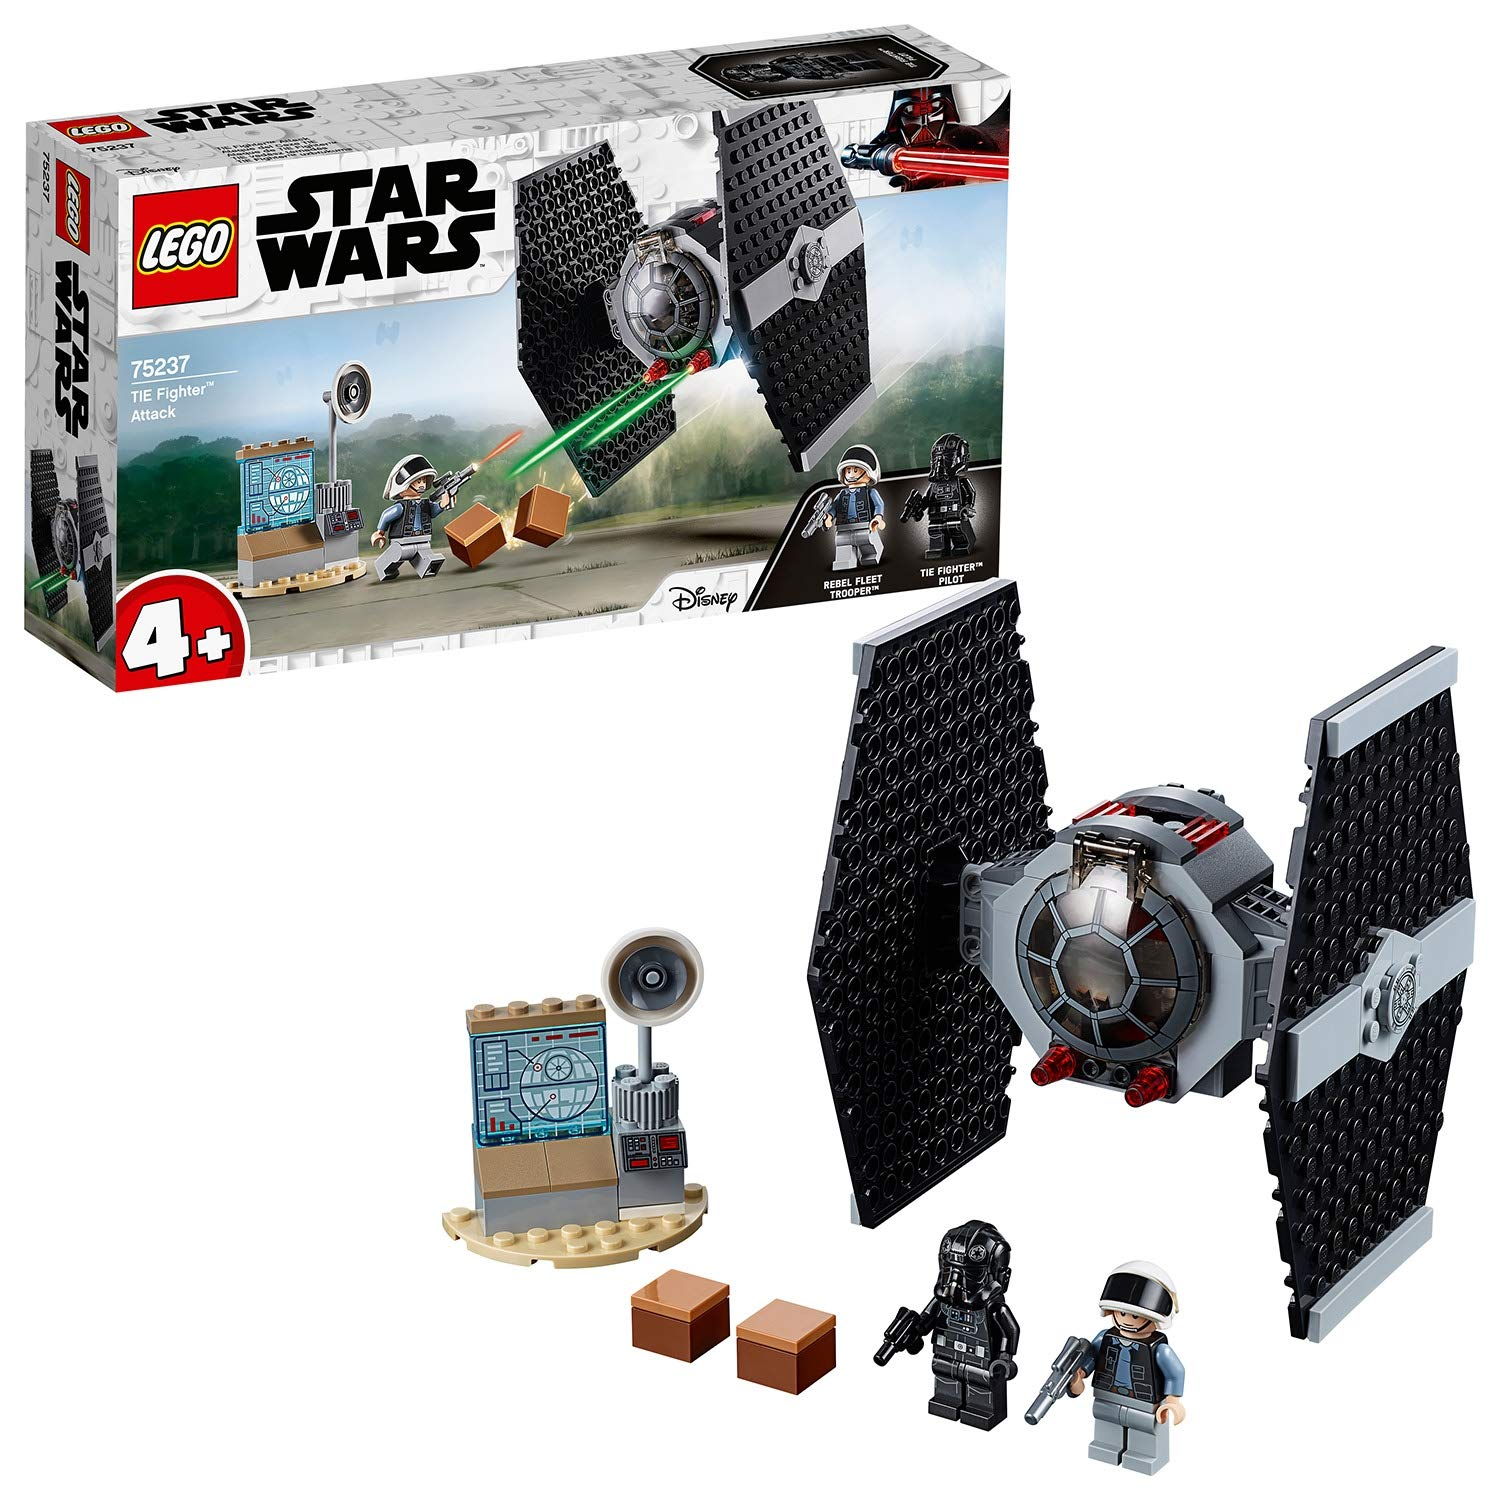 33% off LEGO 75237 Star Wars TIE Fighter Attack Battlefront Games Set